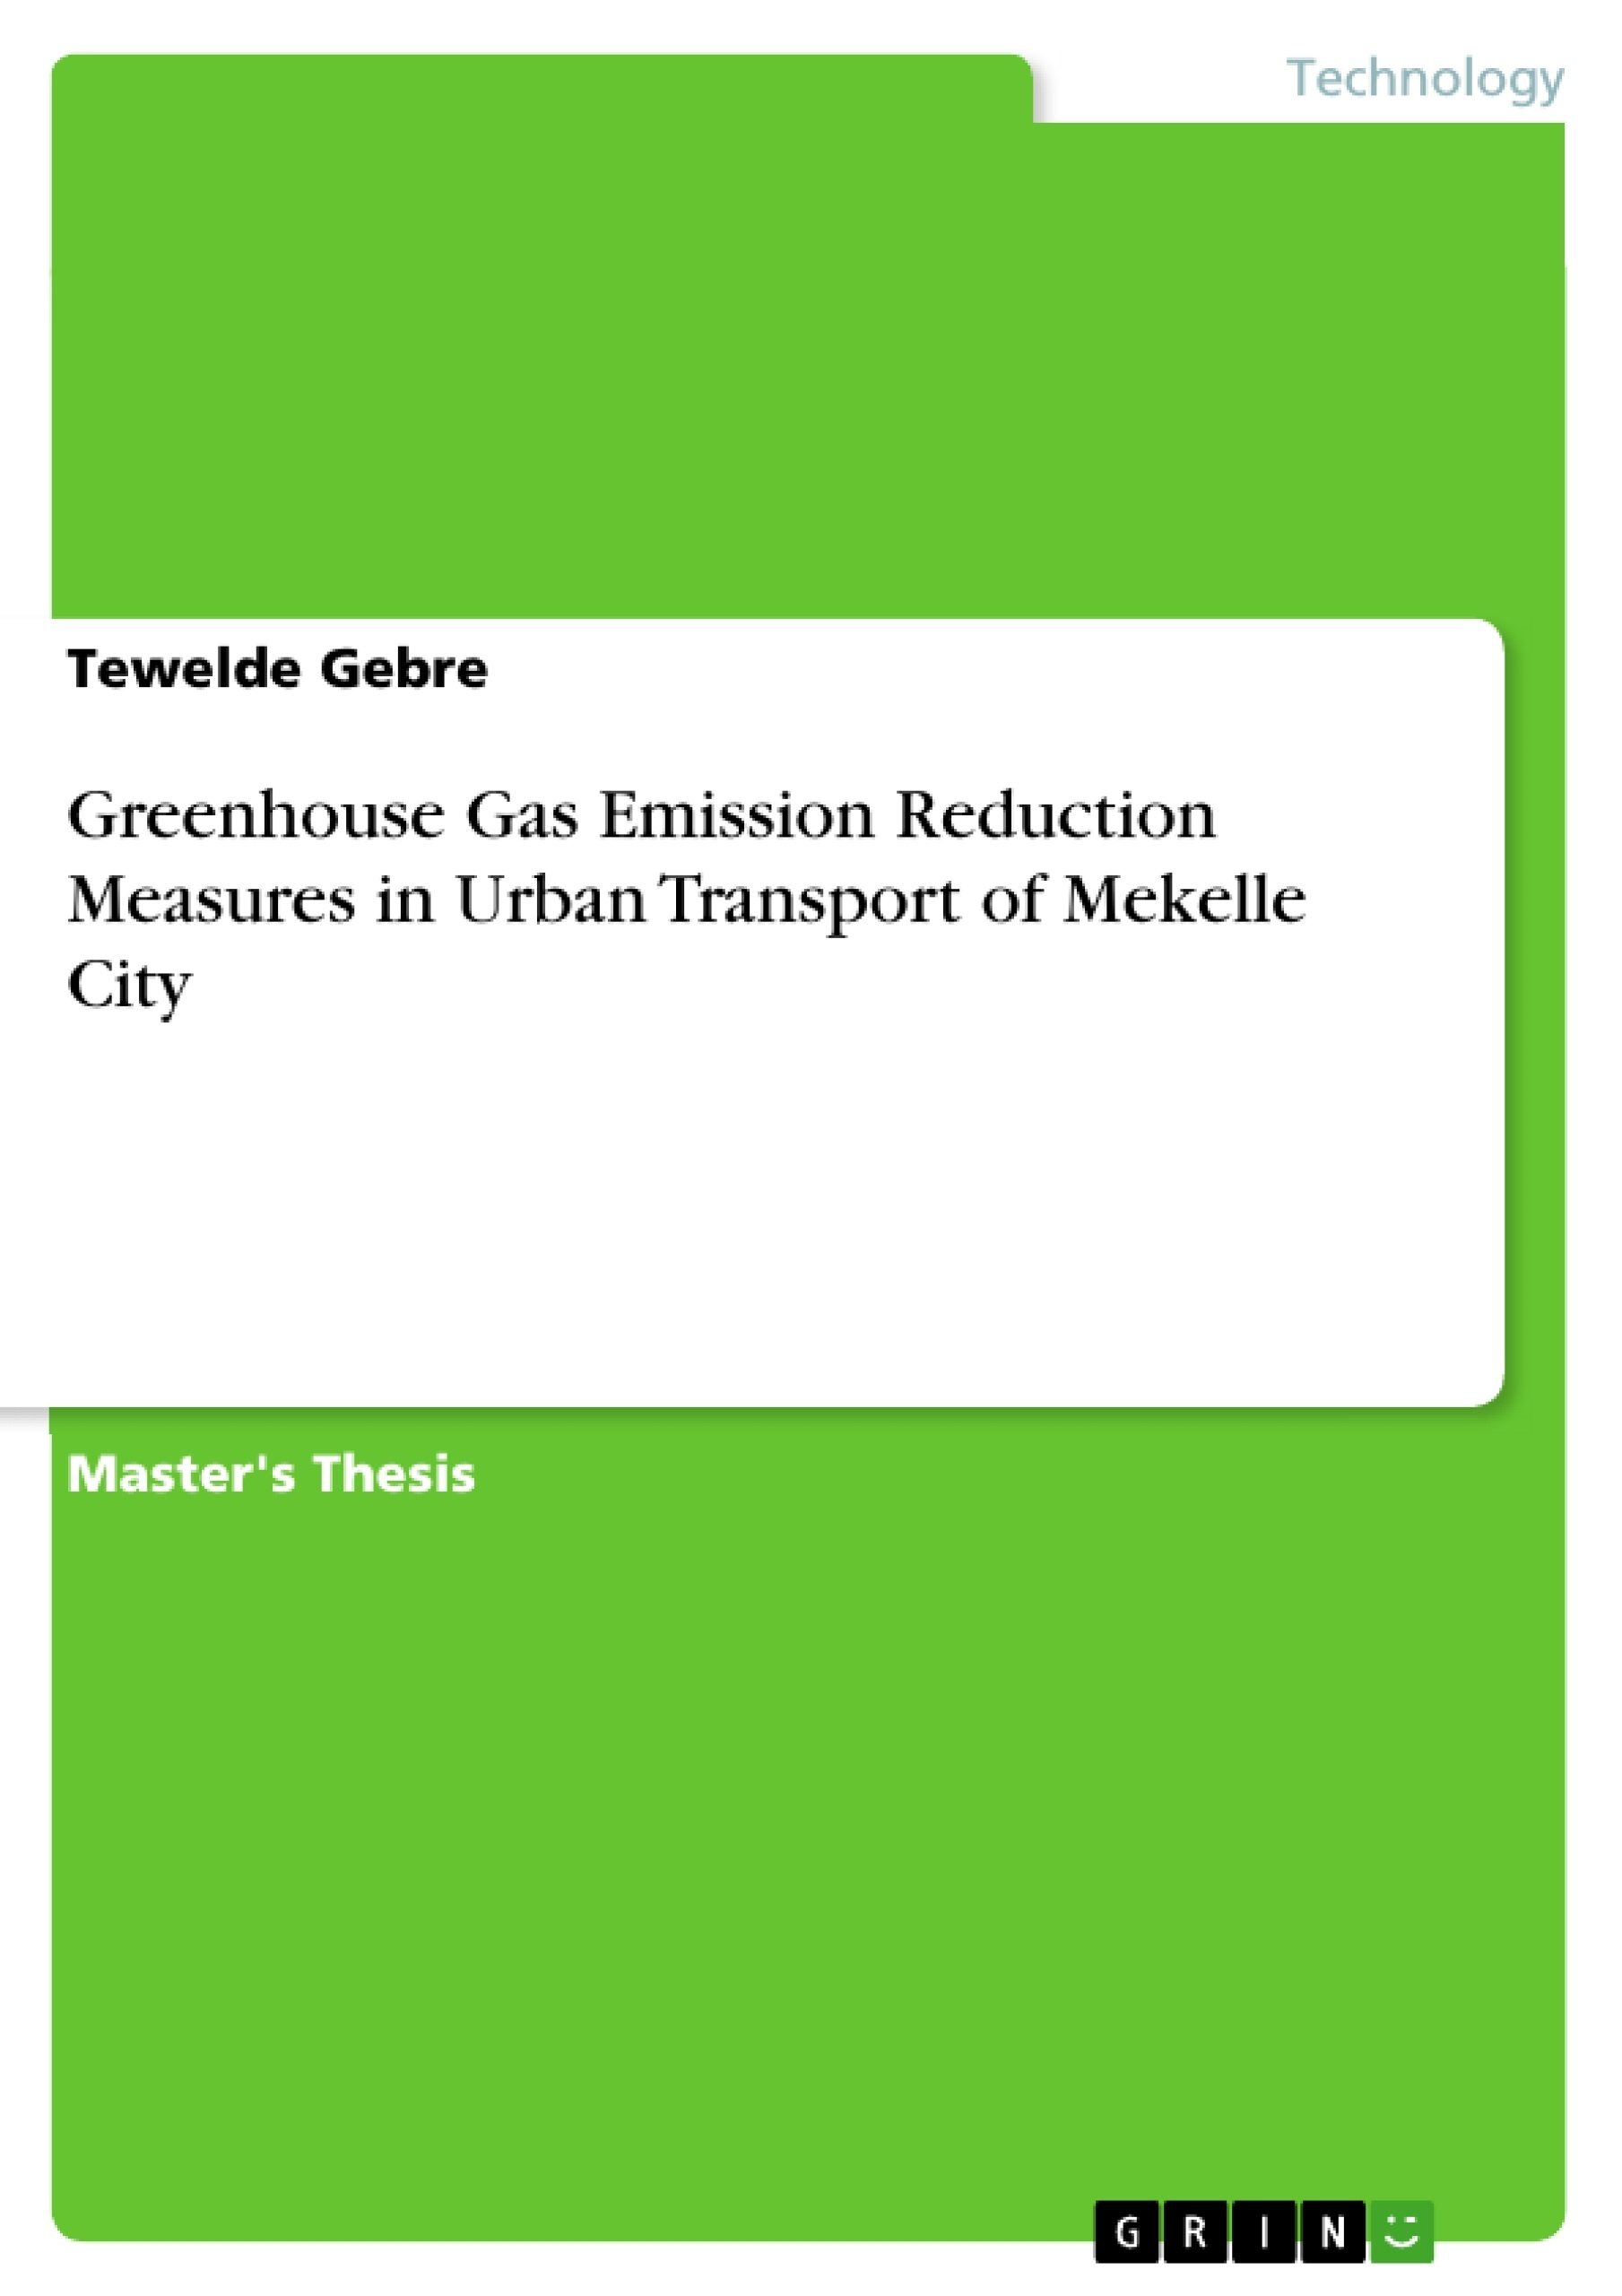 Title: Greenhouse Gas Emission Reduction Measures in Urban Transport of Mekelle City